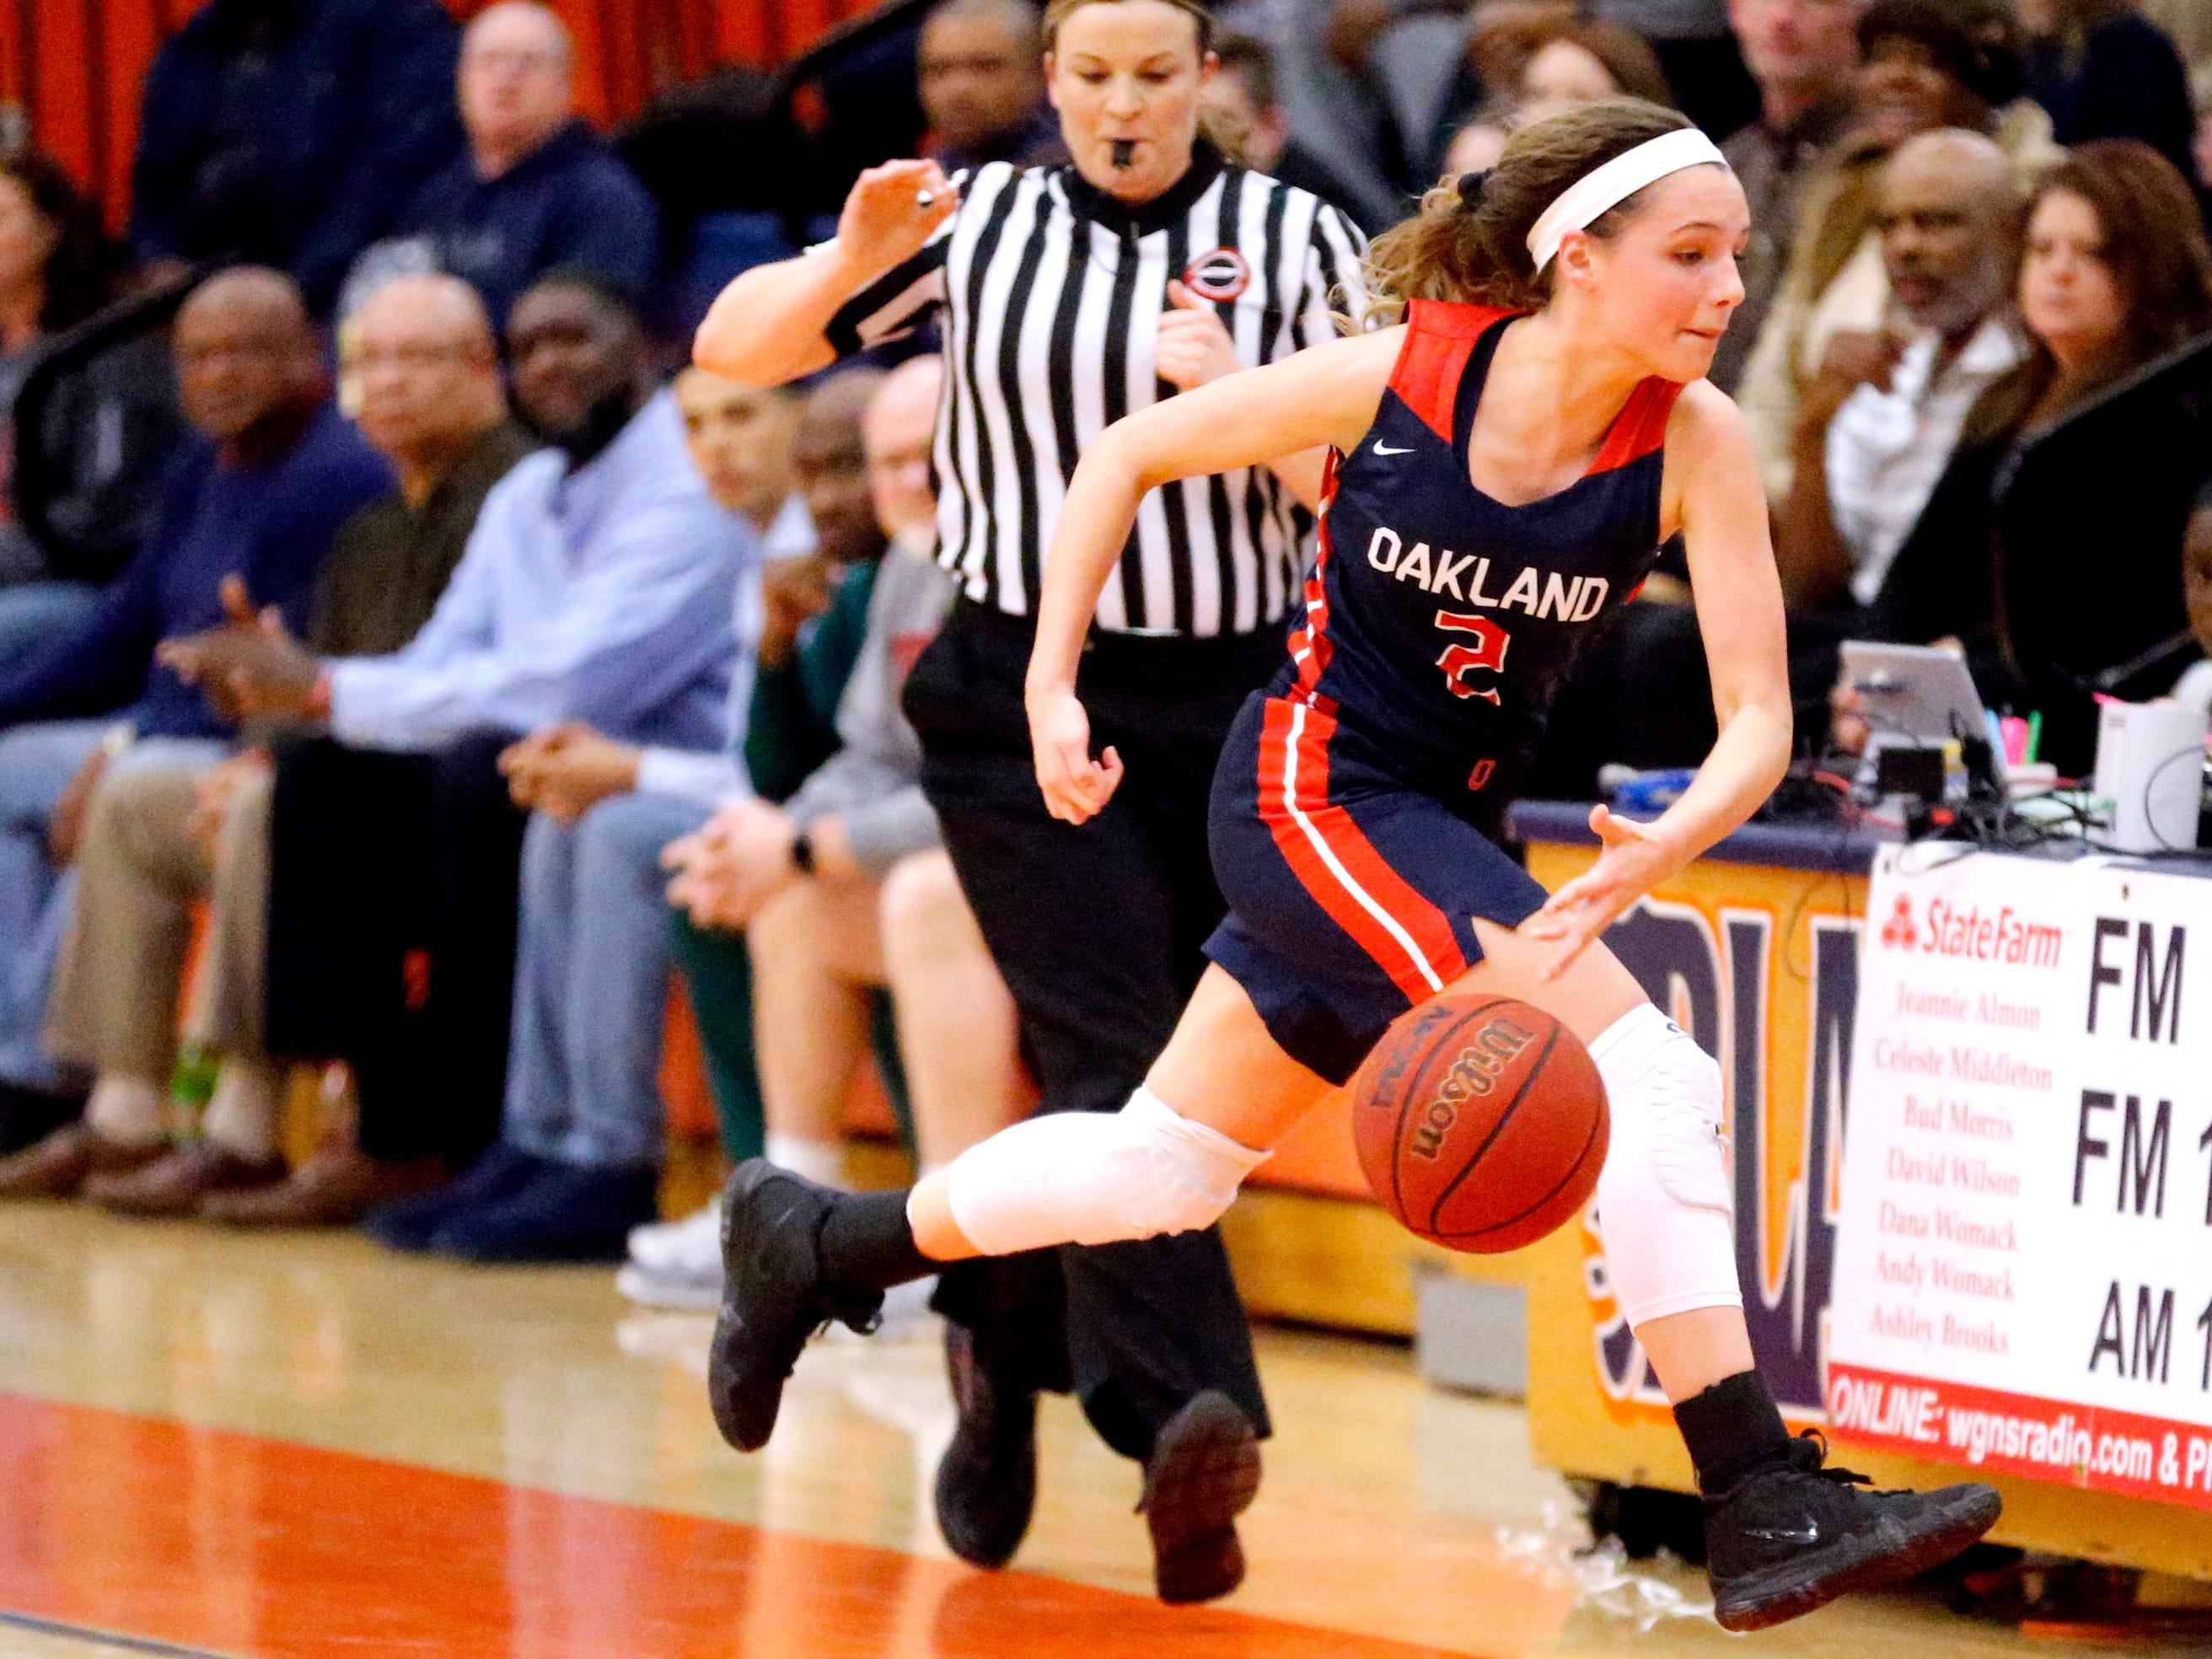 Oakland's Faith Adams (2) tries to hit the ball back into bounds before she goes out of bounds during the game against Blackman on Friday, Feb. 8, 2019.